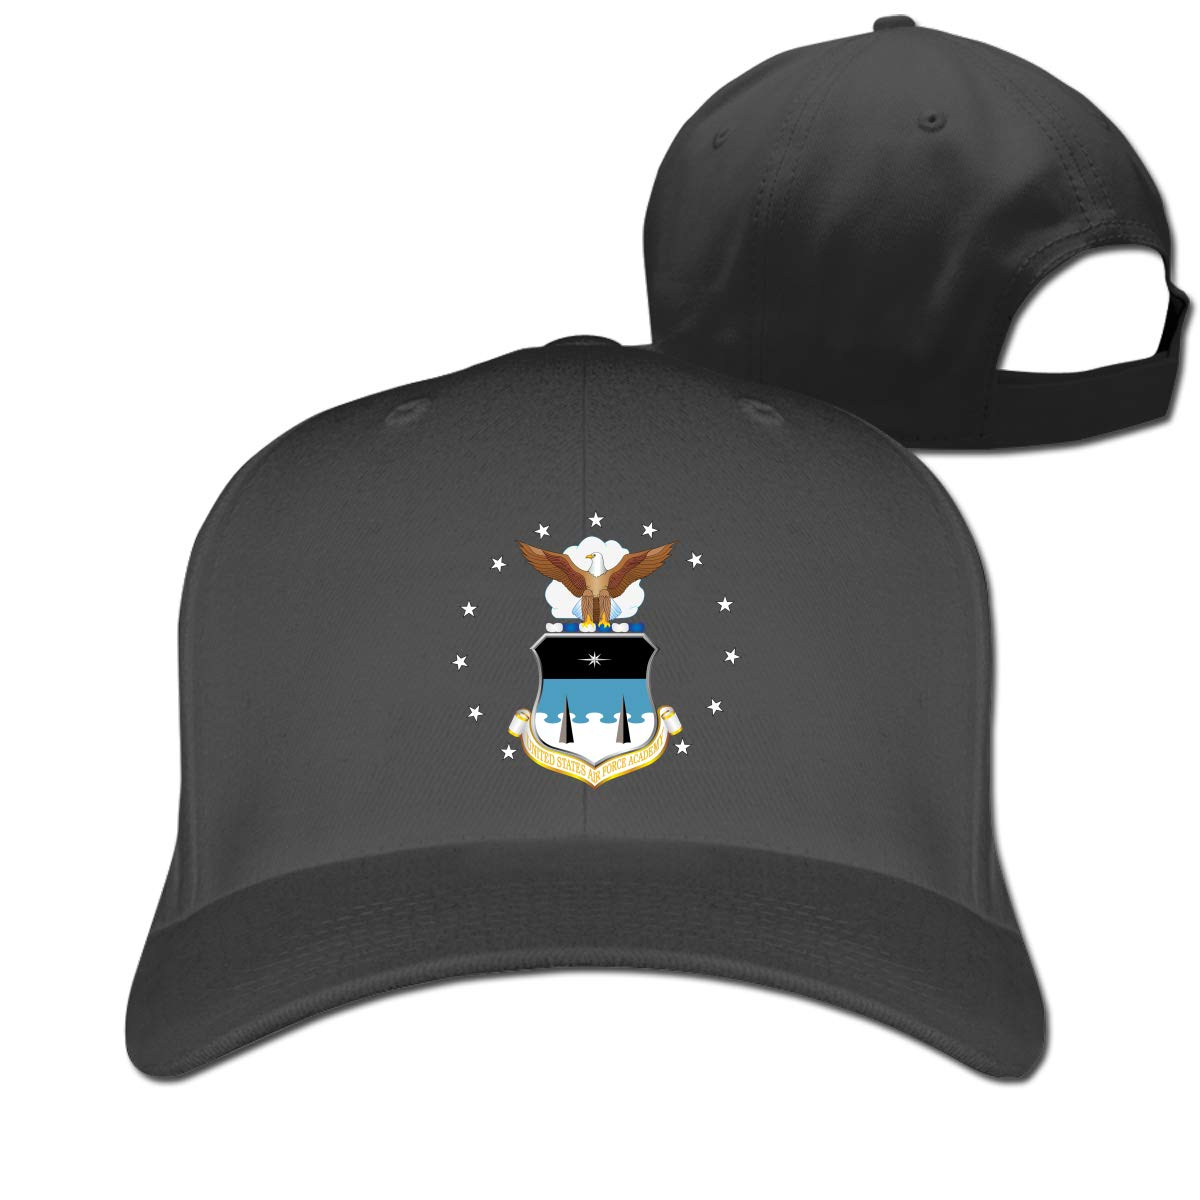 States Air Force Academy Logo Fashion Adjustable Cotton Baseball Caps Trucker Driver Hat Outdoor Cap Black